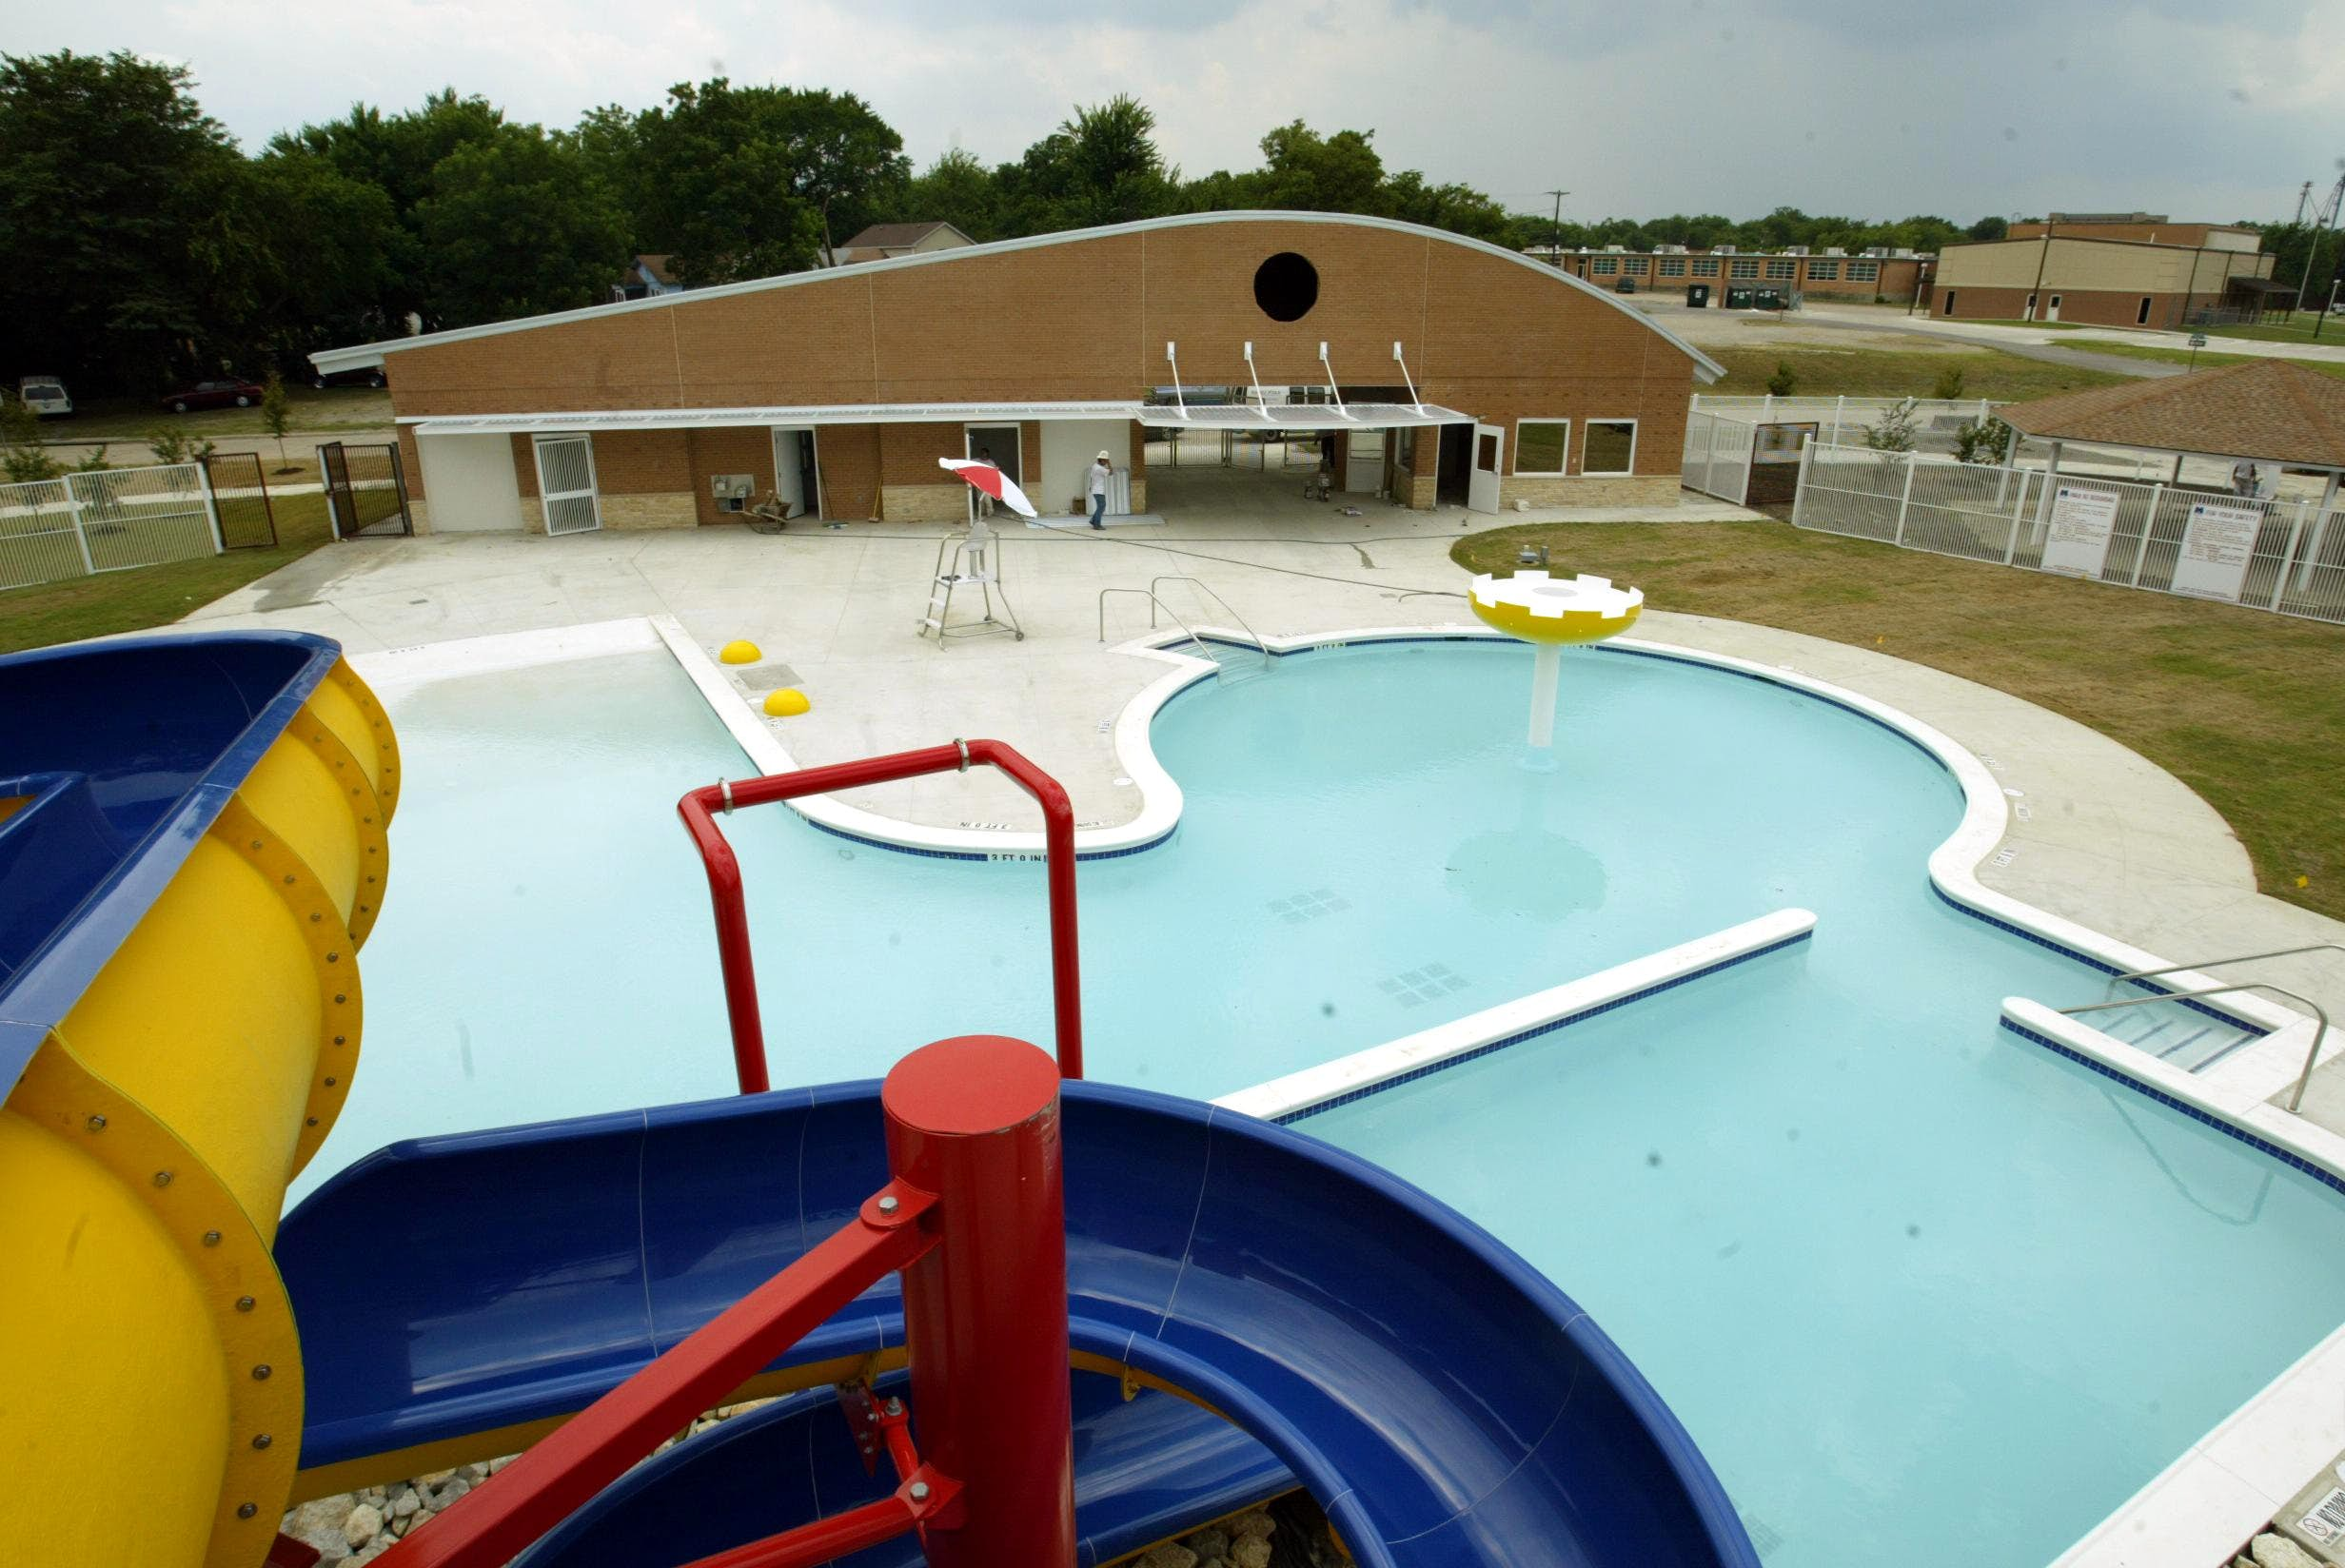 Mckinney pools open for summer season mckinney dallas news - Public swimming pools in mckinney tx ...